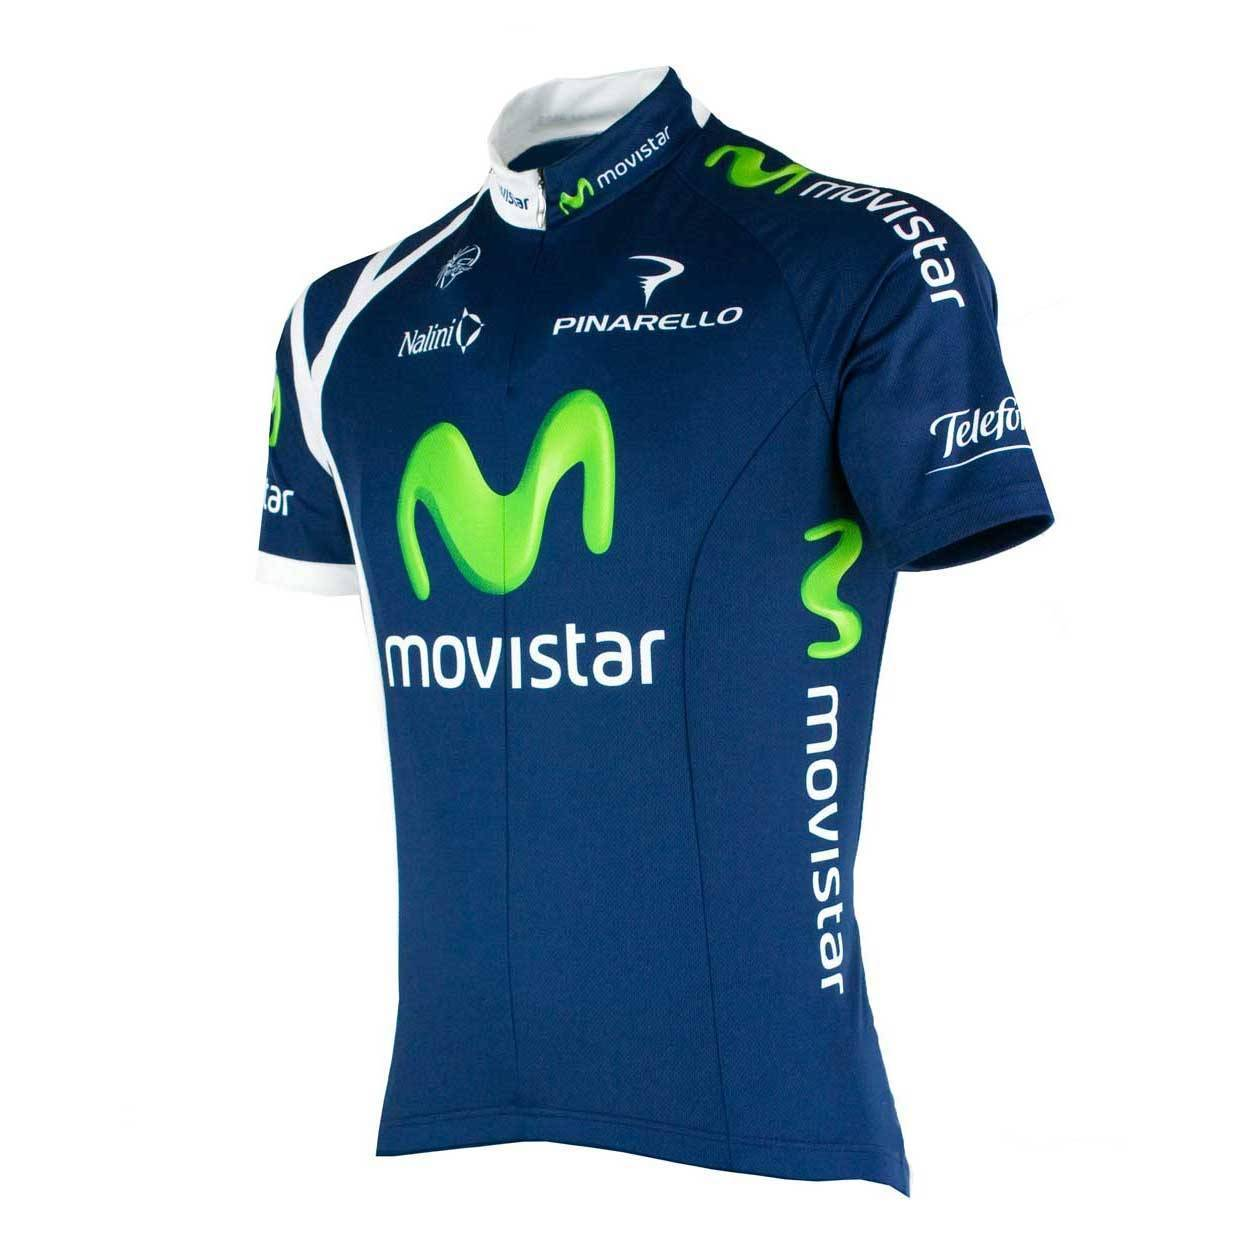 cycling wear,cycling jersey,bicycle jersey,cycling clothing